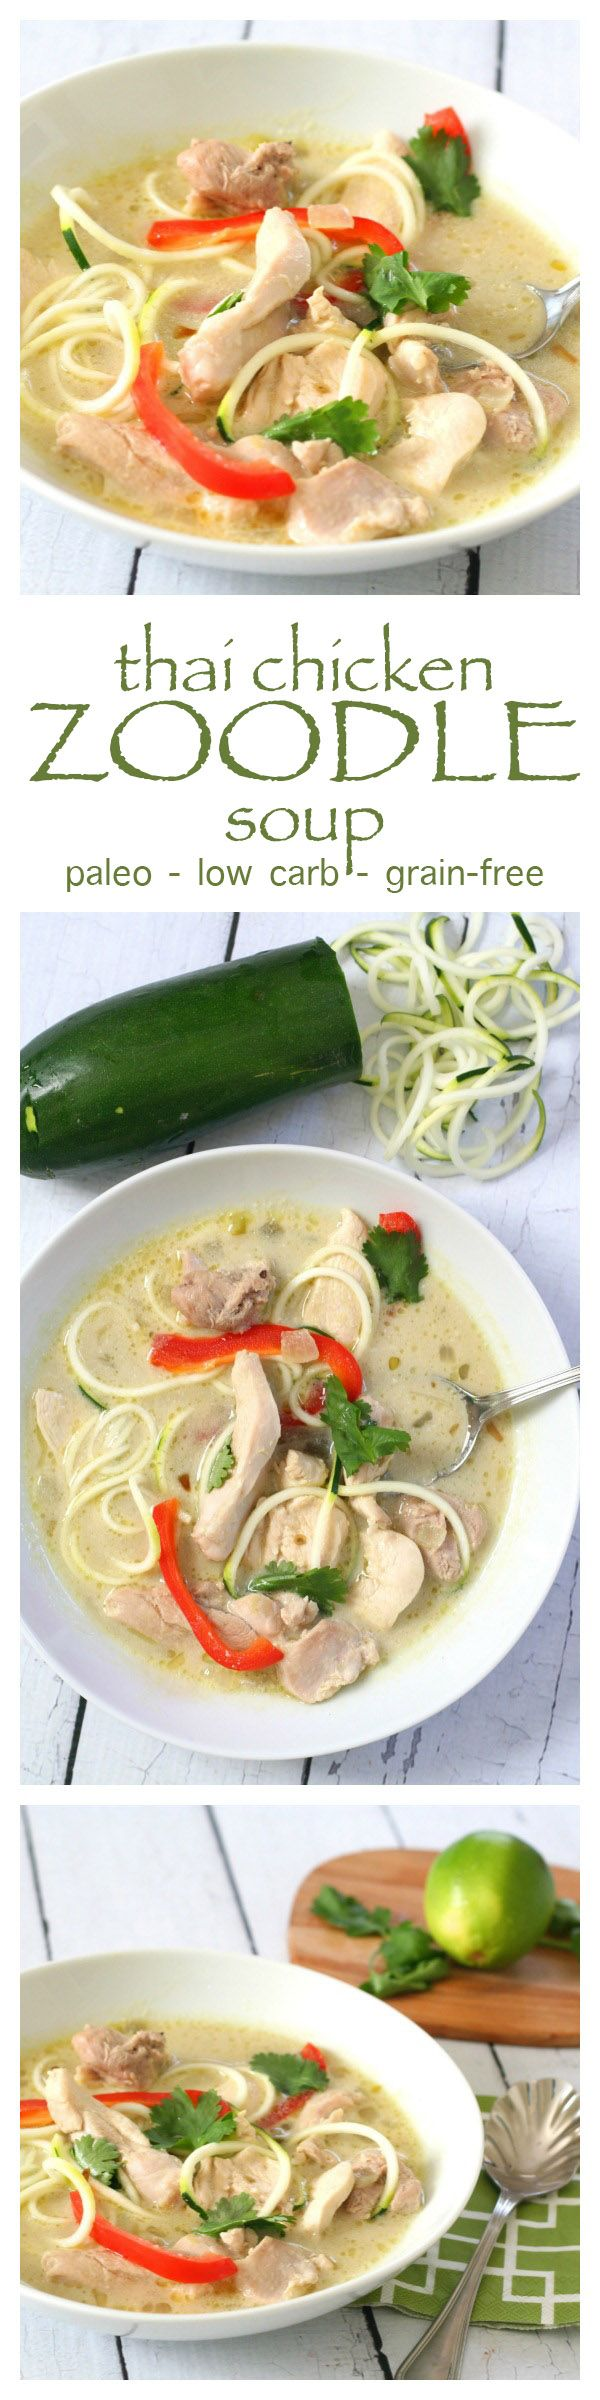 Warm up and get healthy! Creamy coconut milk broth with Thai spices. Sugar free, grain-free, paleo.